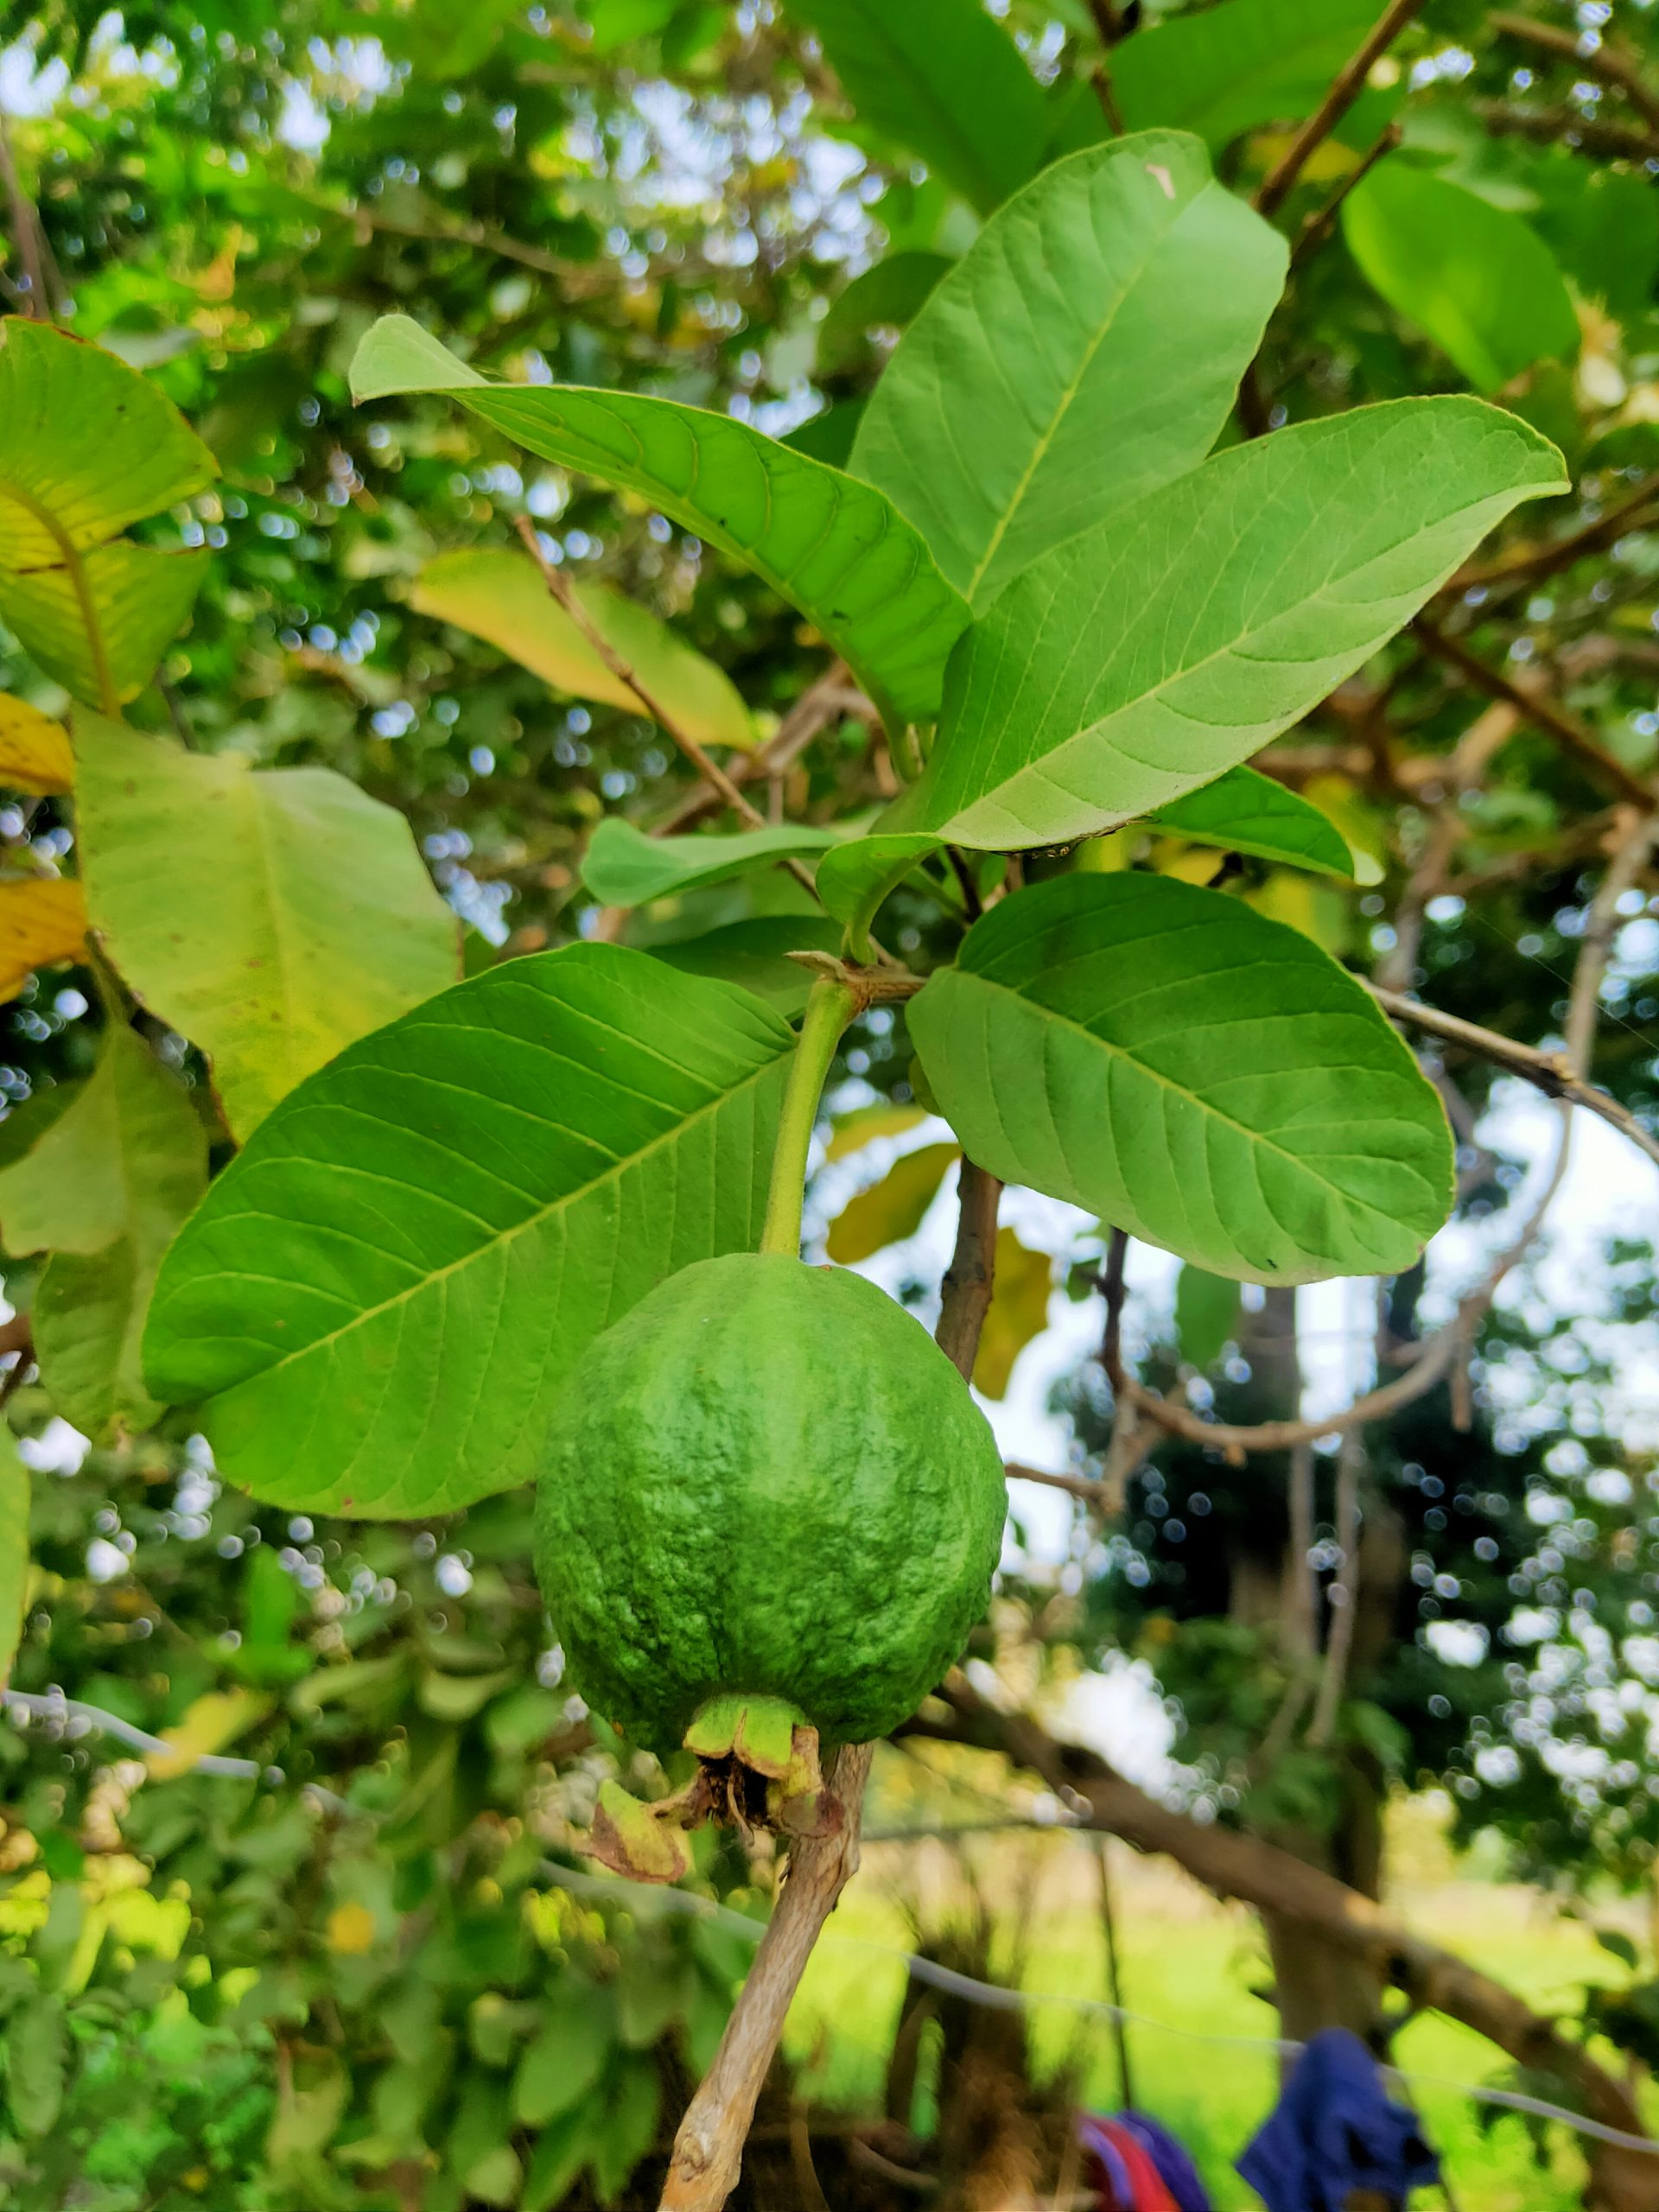 Guava fruit hanging on its tree